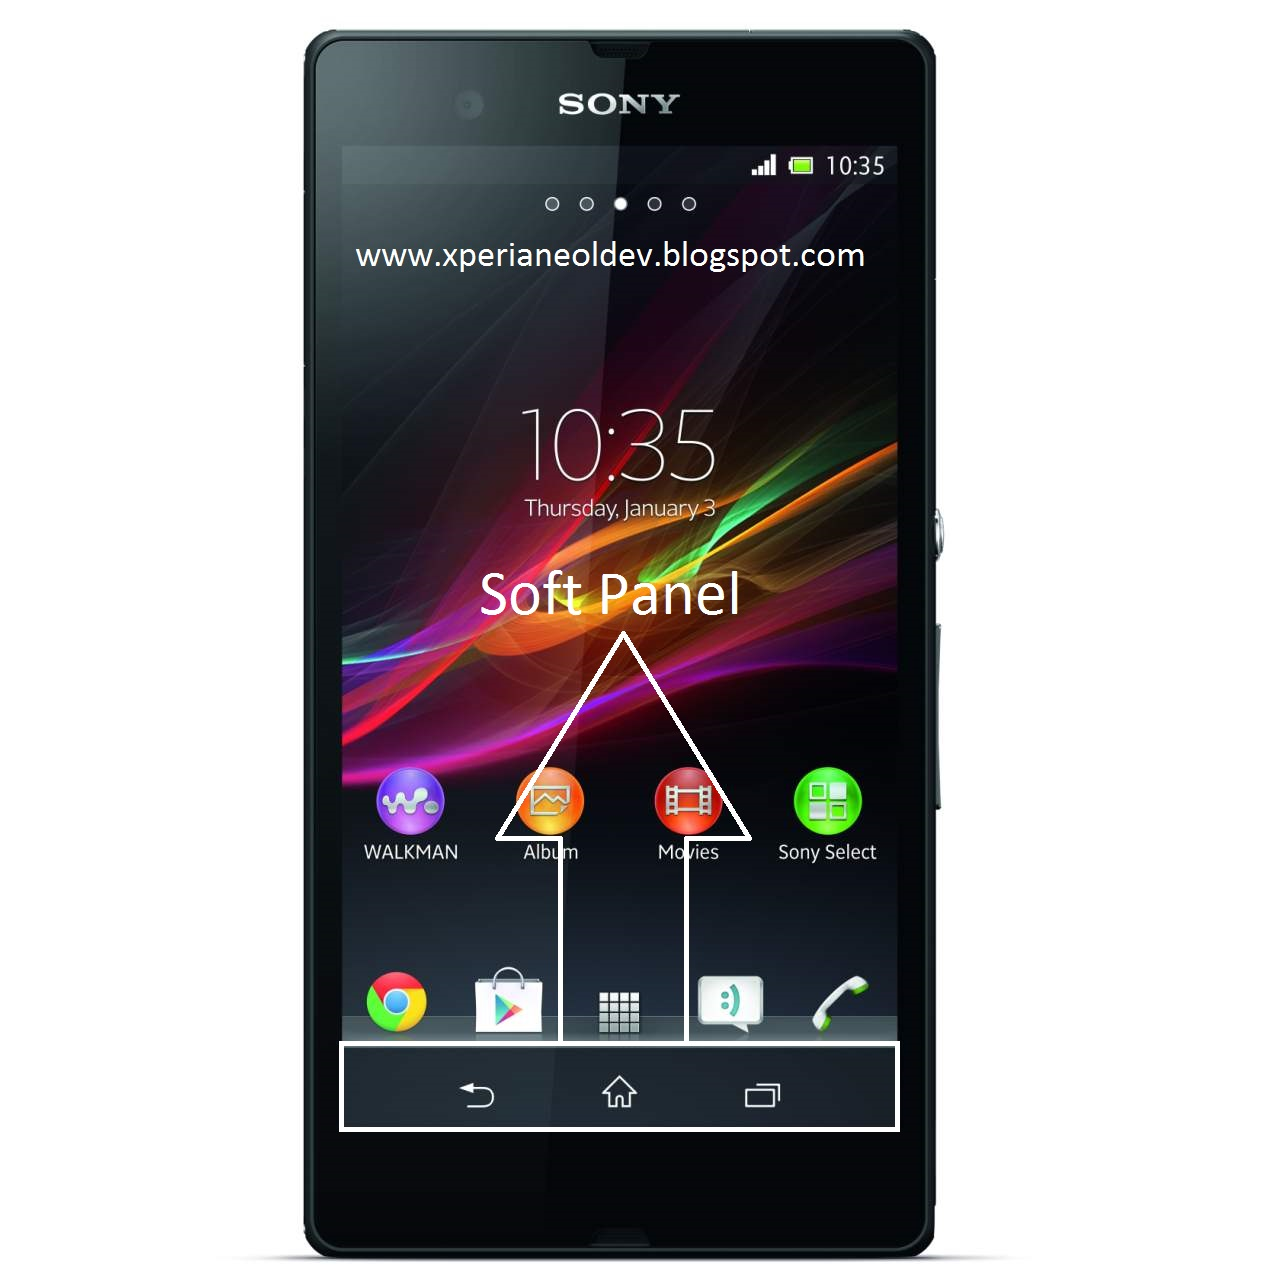 ... Smartphones are coming with soft panel but it is not in Xperia neo L